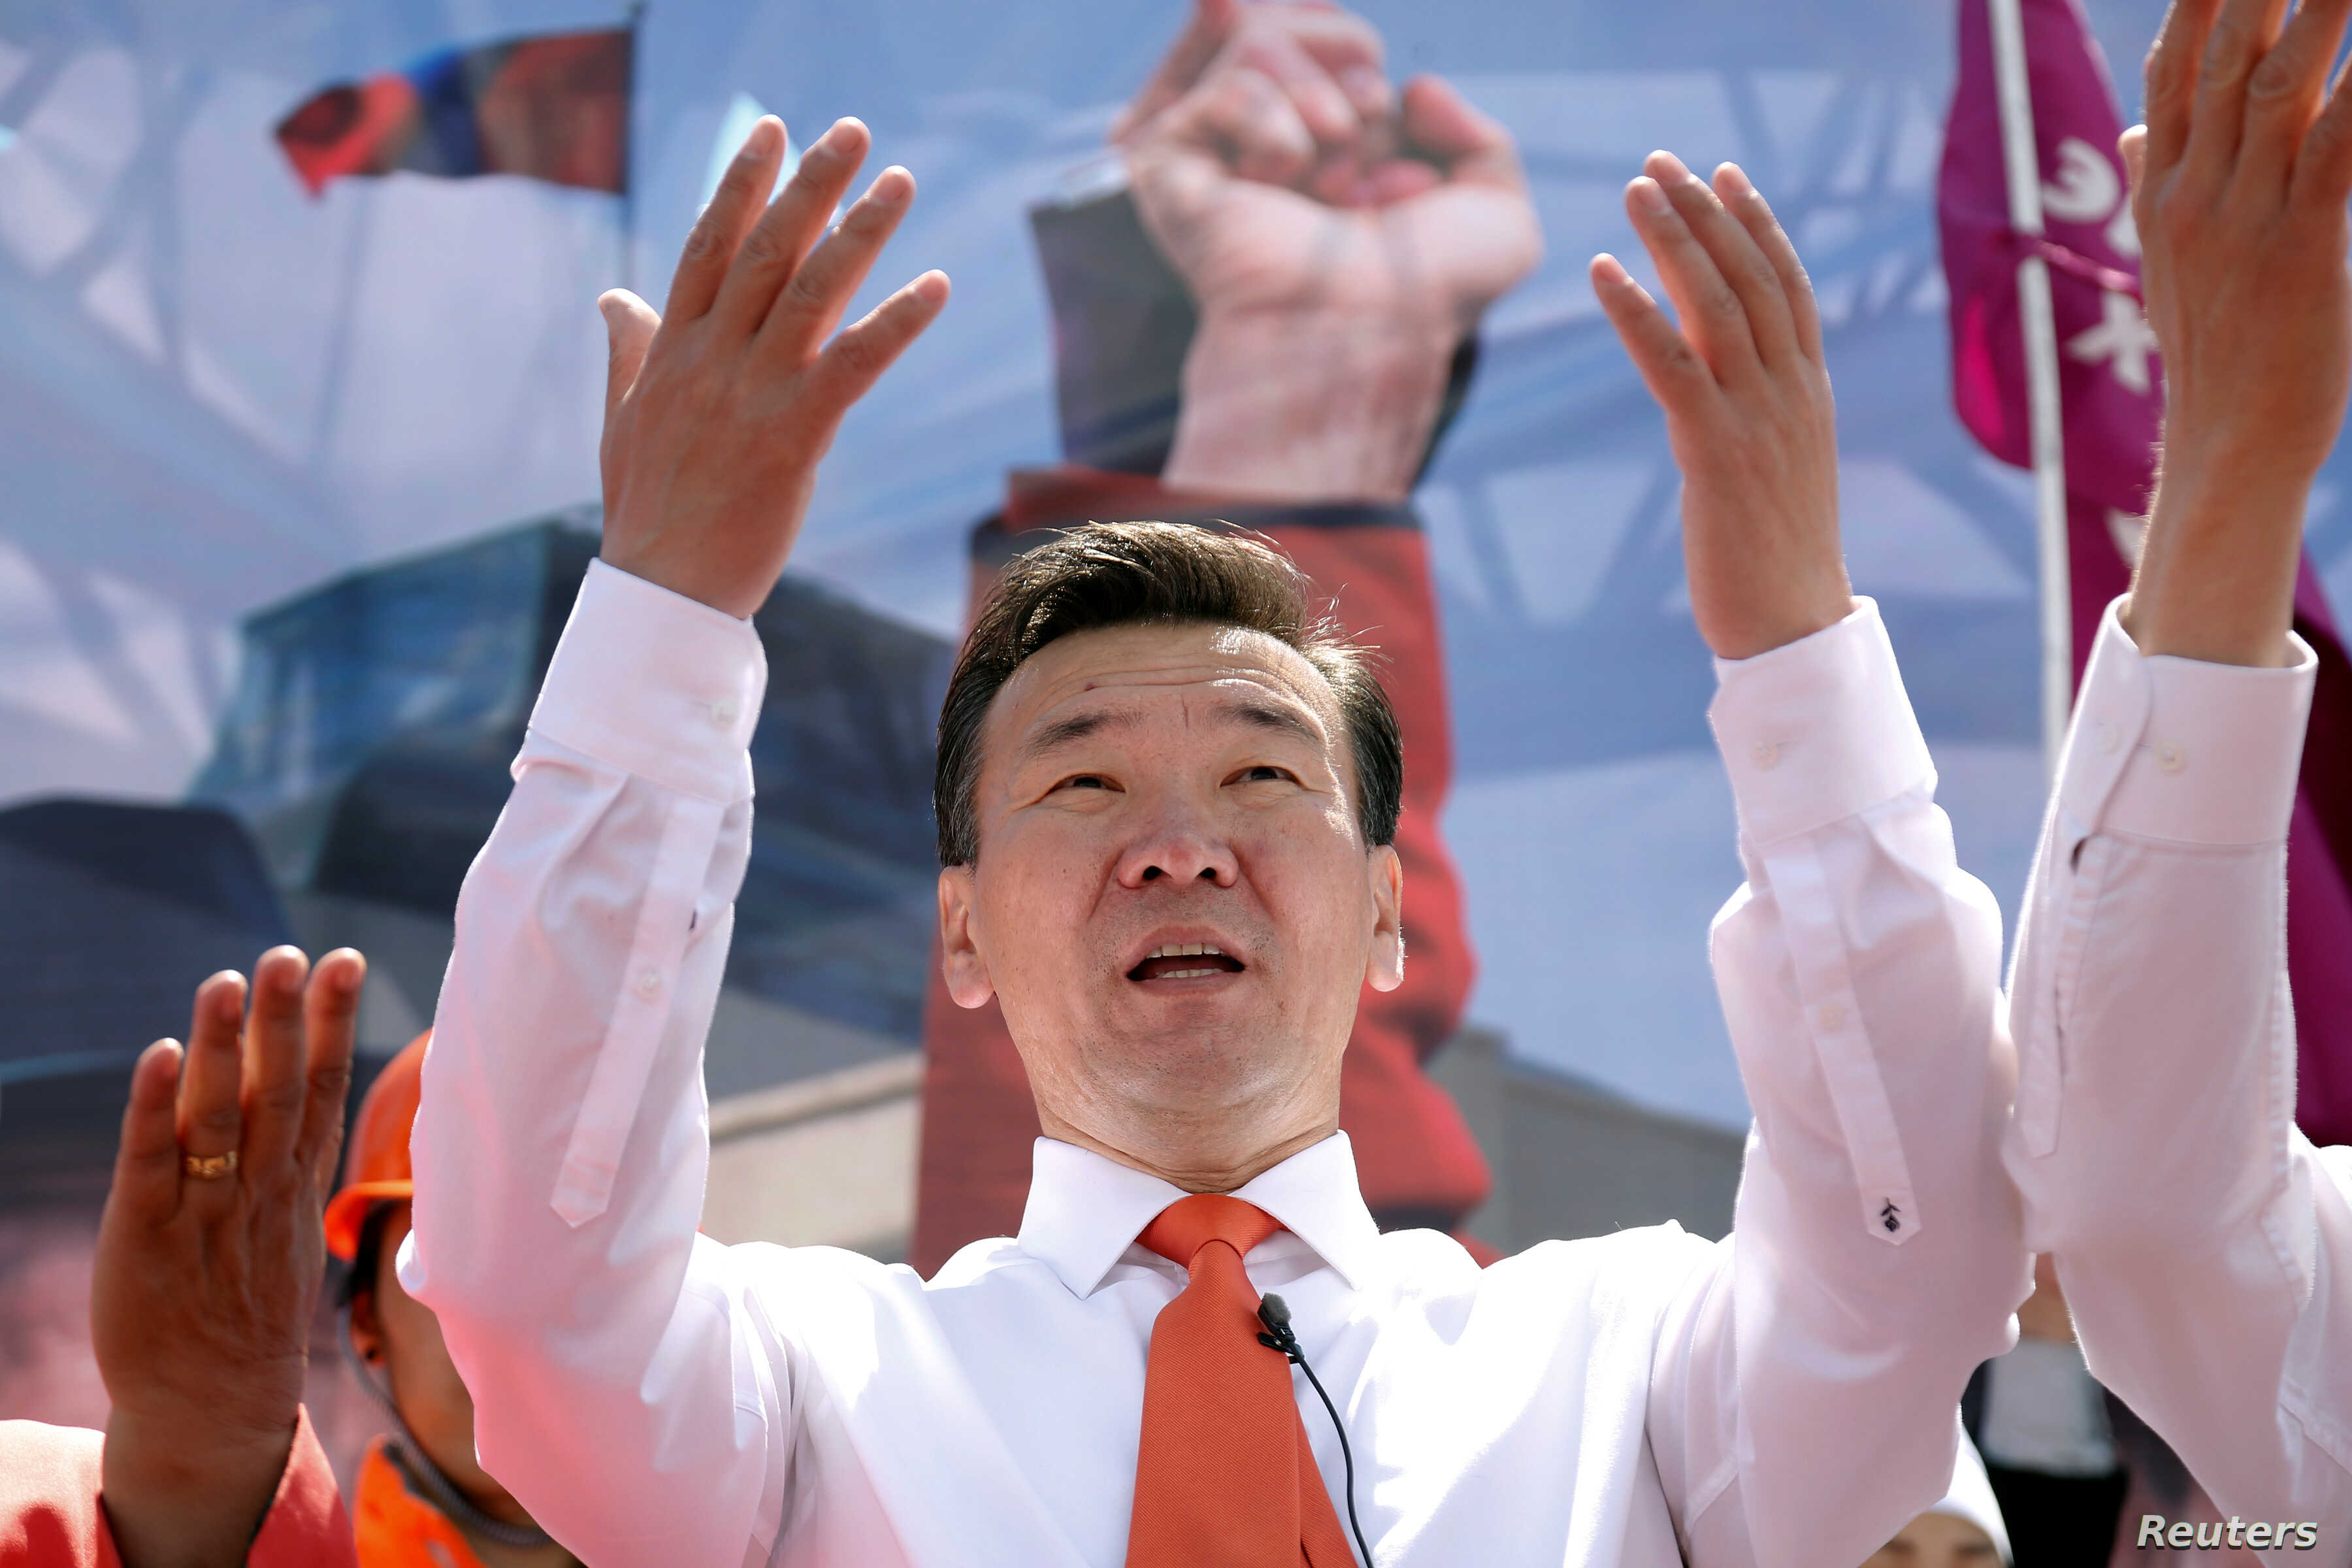 Sainkhuu Ganbaatar of the Mongolian People's Revolutionary Party (MPRP) waves to supporters as he begins campaigns in the Mongolian presidential elections in Ulaanbaatar, Mongolia, June 6, 2017.